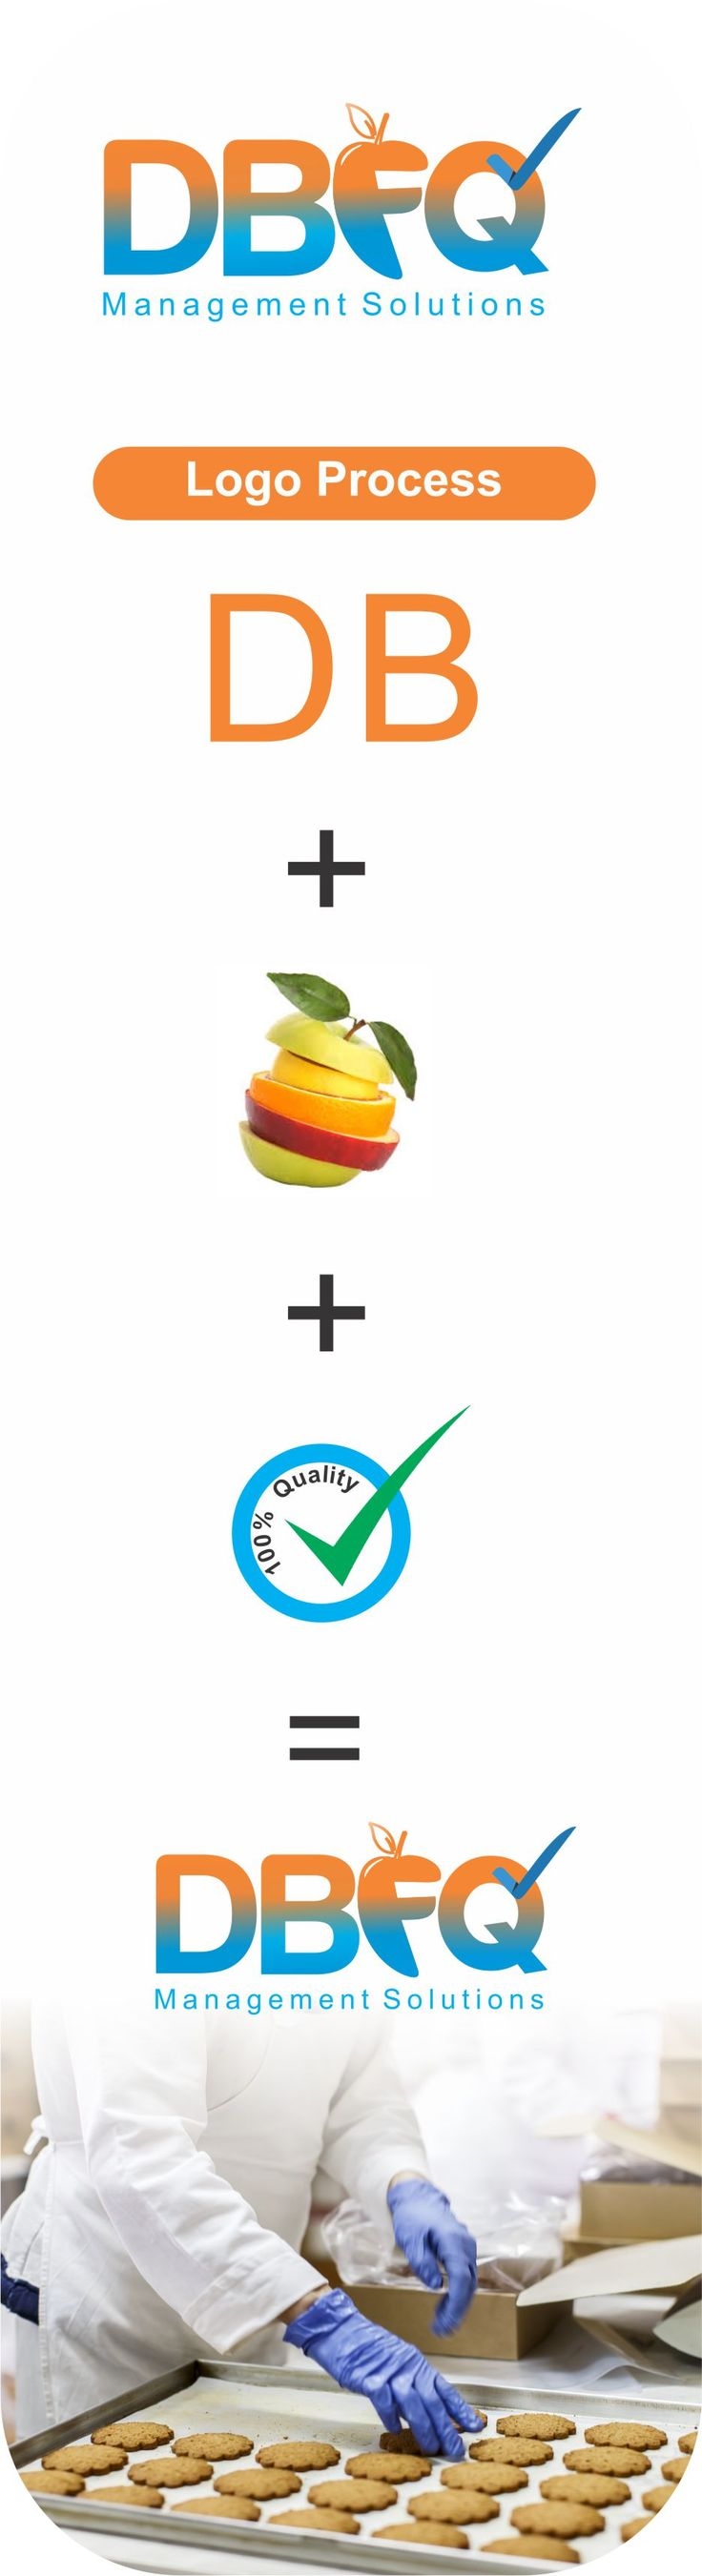 Logo Design Concept The mission of the company is successful implementation of global standards in food safety, quality management and occupational health safety management systems. DB is name of proprietor and company's main client is apple company. Hence we have designed F as in Apple and F stands for fruit as well. Similarly Q stands for quality and tick over it defines top quality or product is passing quality standards which indicates the business objective.